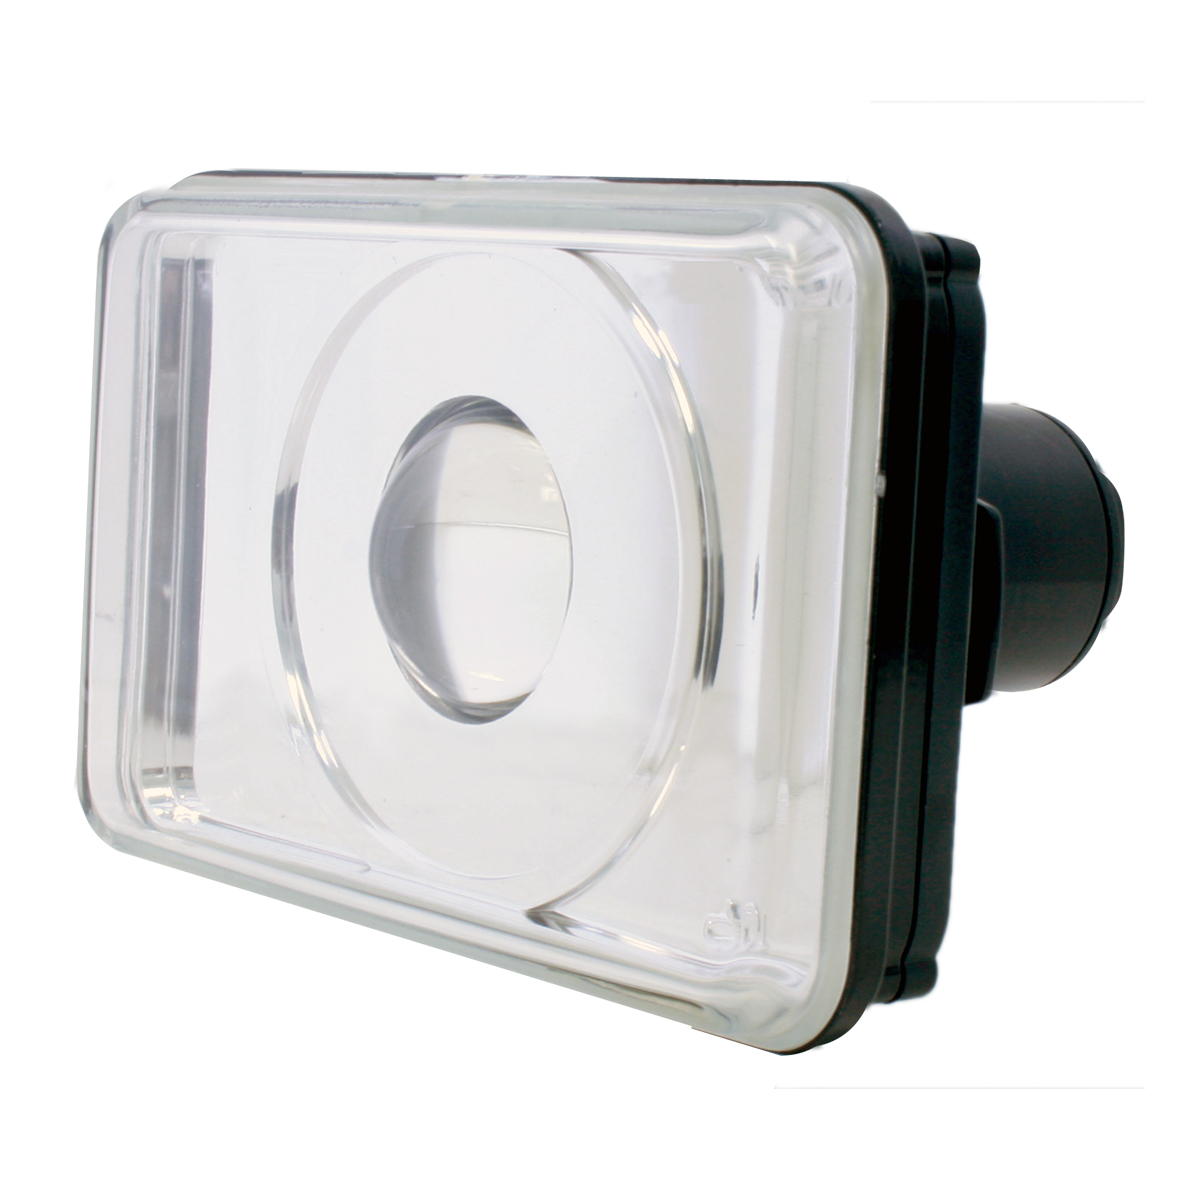 #77403 Projector/Fish Eye Lens – Angled View